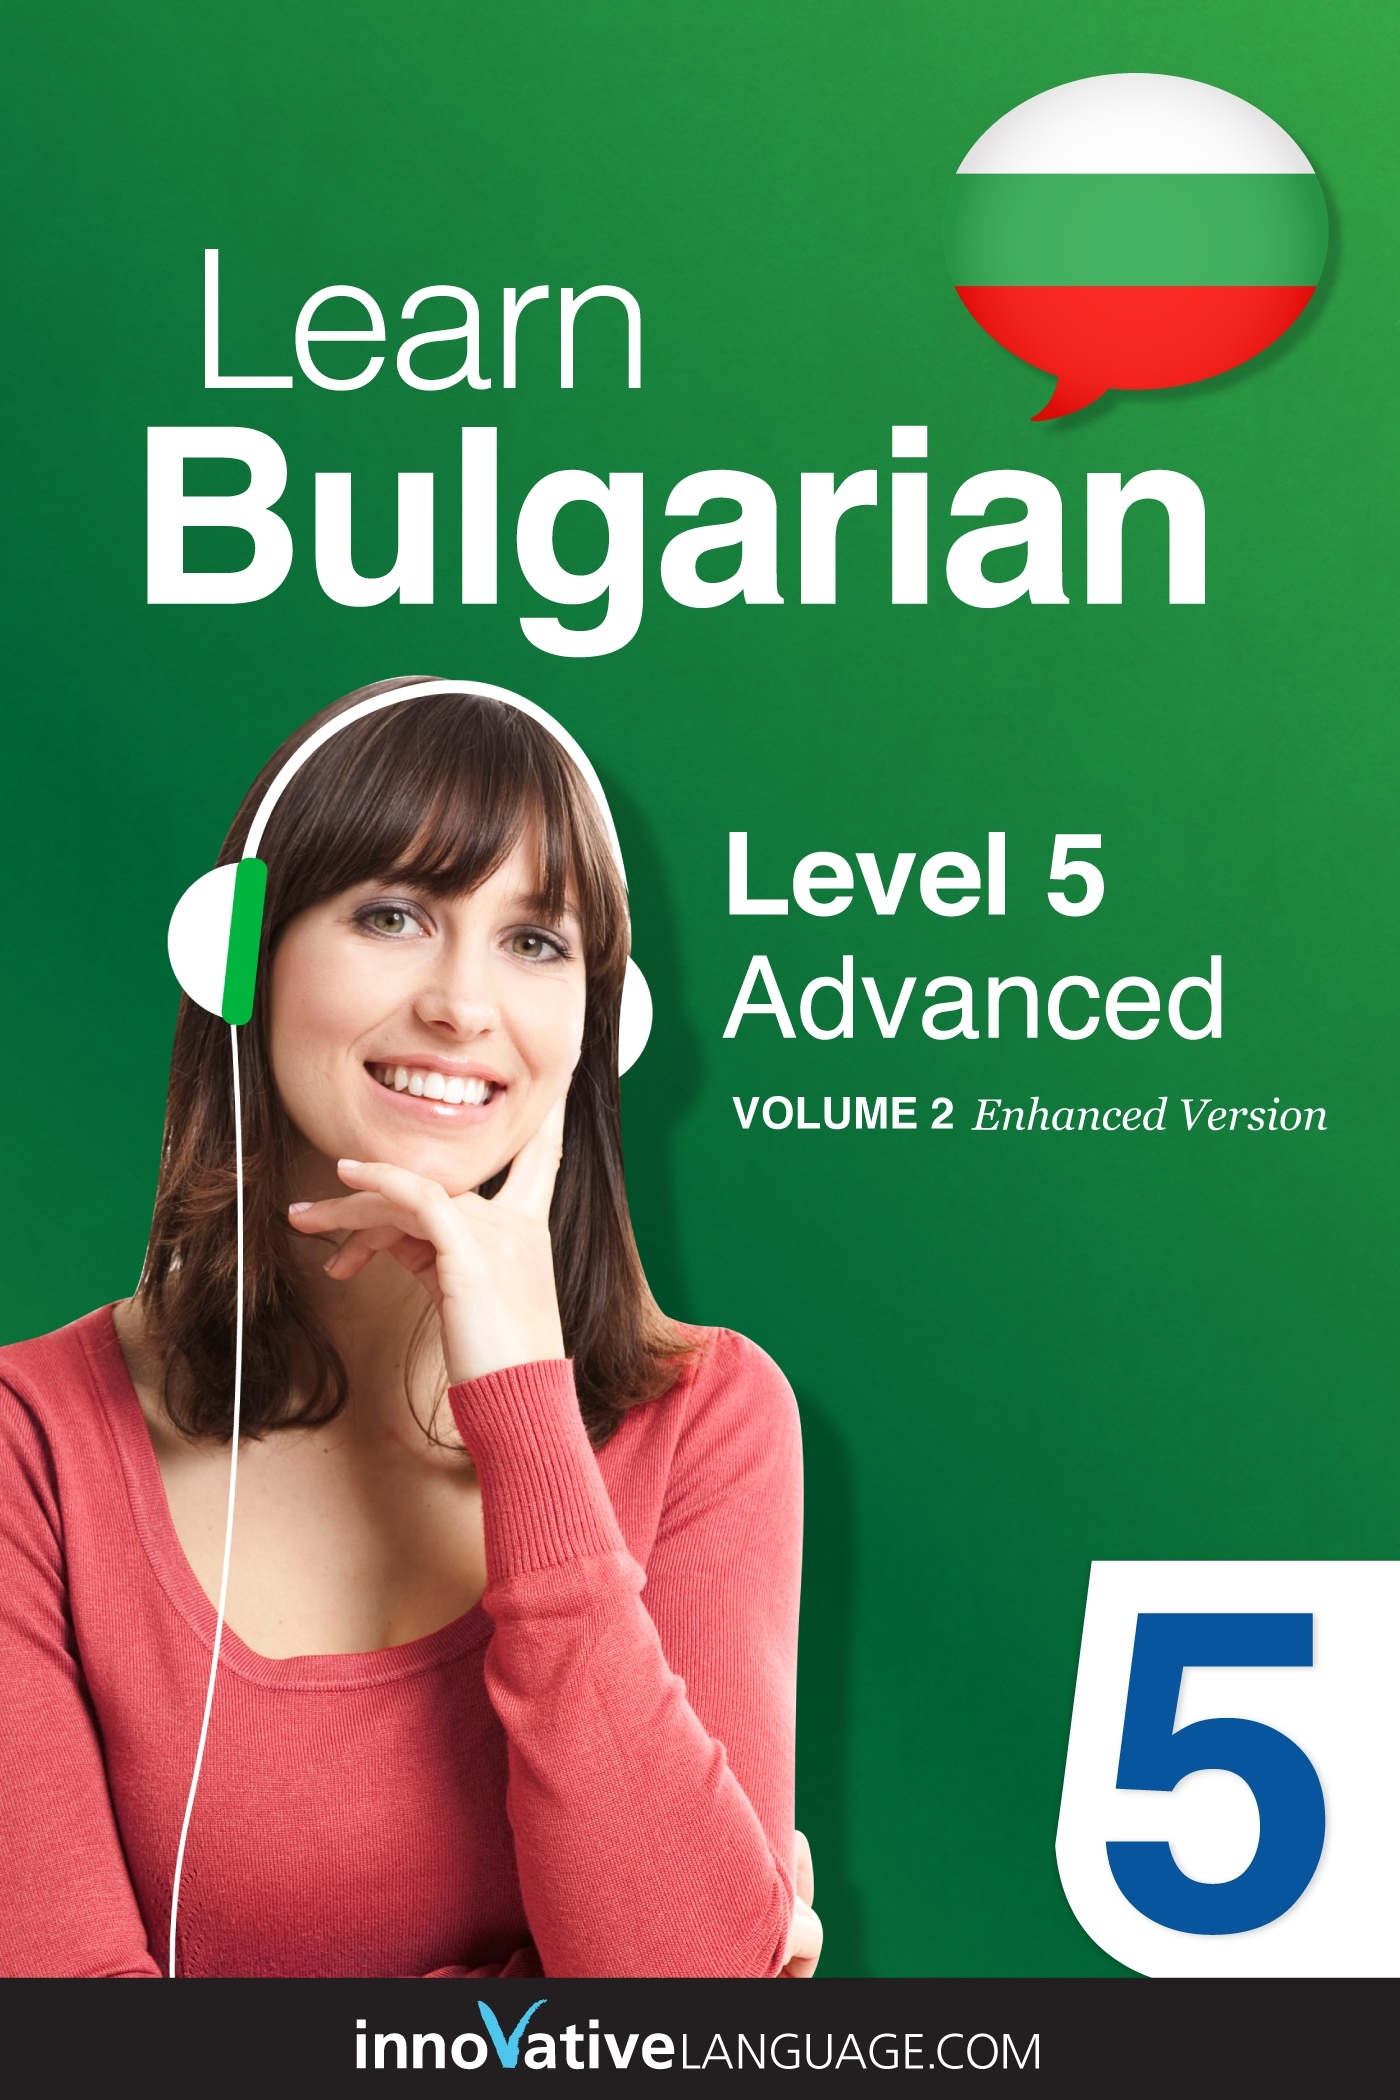 Learn Bulgarian - Level 5: Advanced, Volume 2